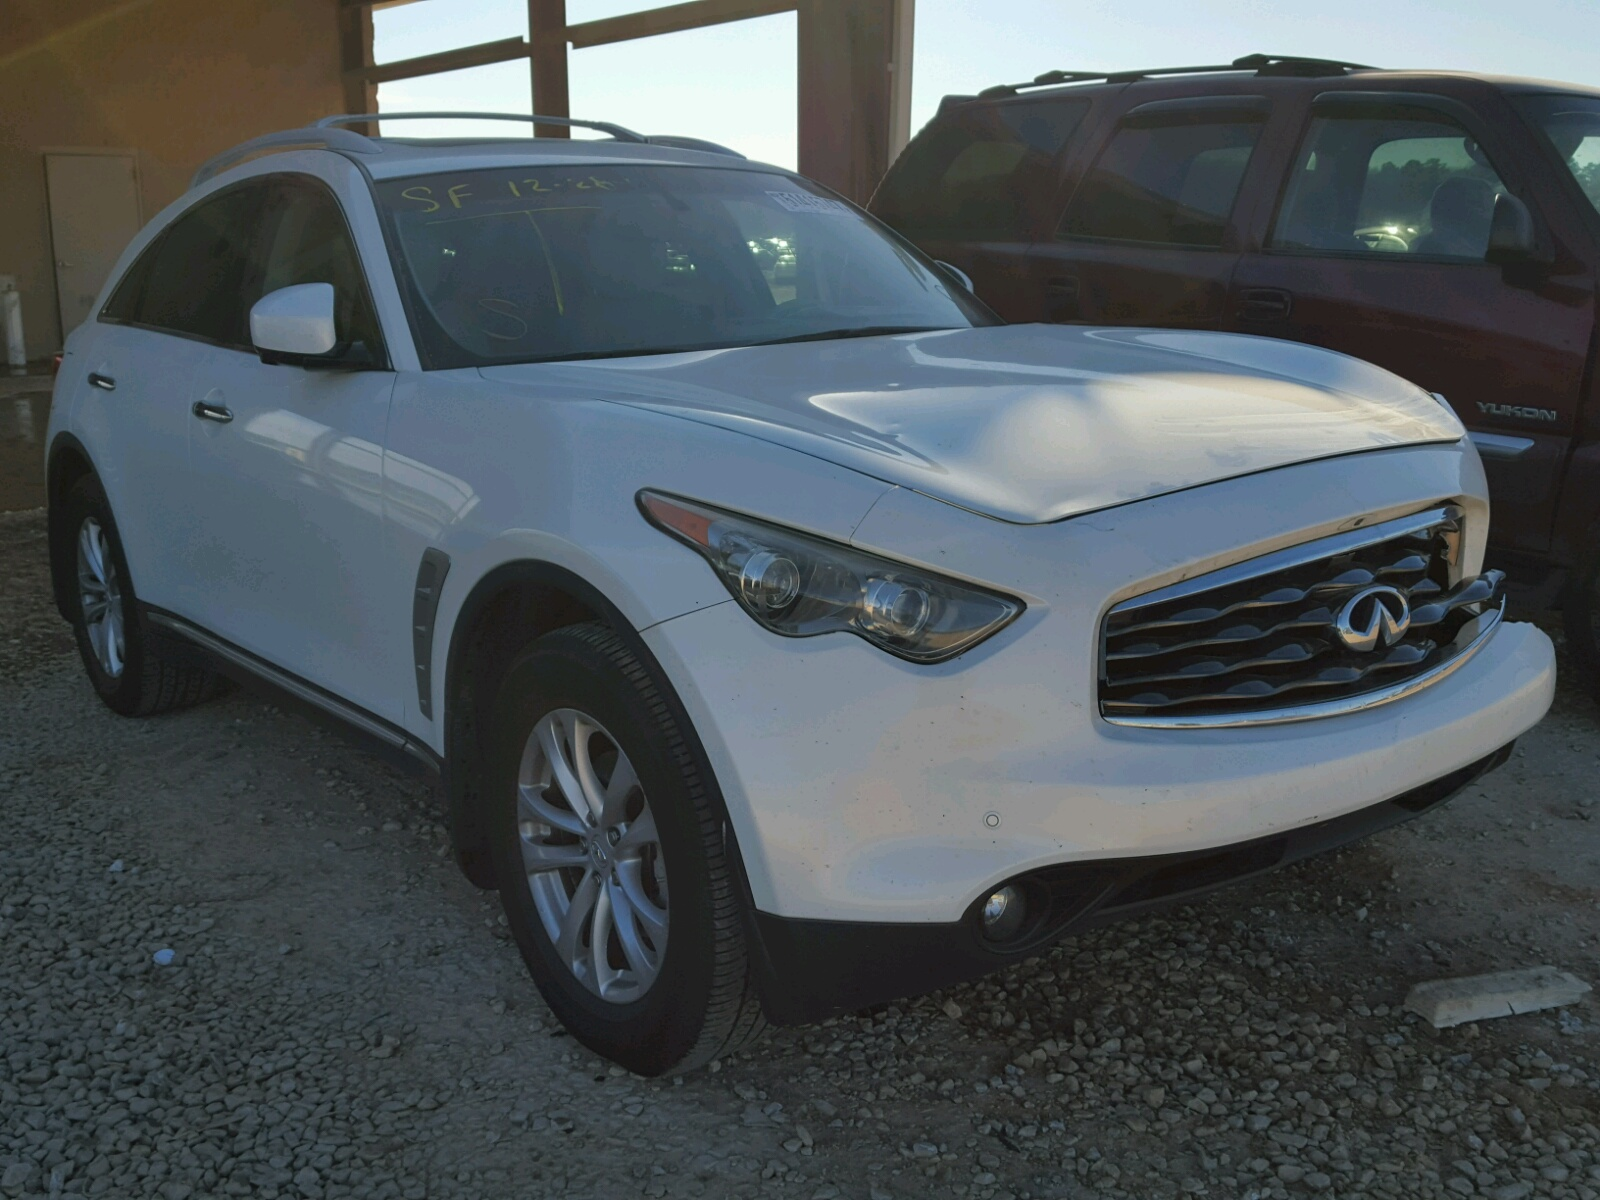 l rapids grand sale for cargurus battle infiniti used awd cars img mi in creek width height